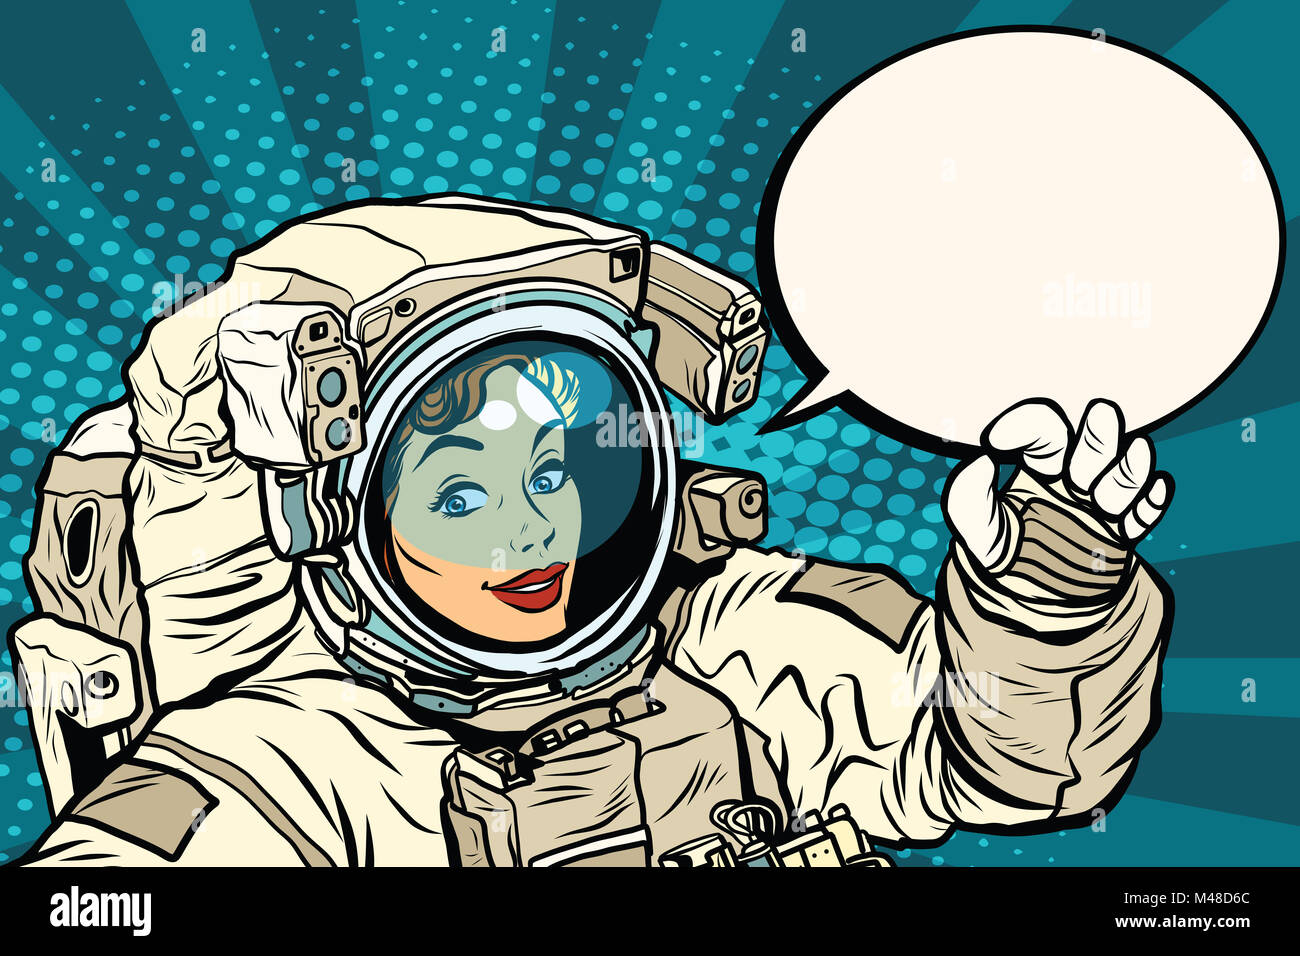 OK gesture female astronaut in a spacesuit - Stock Image